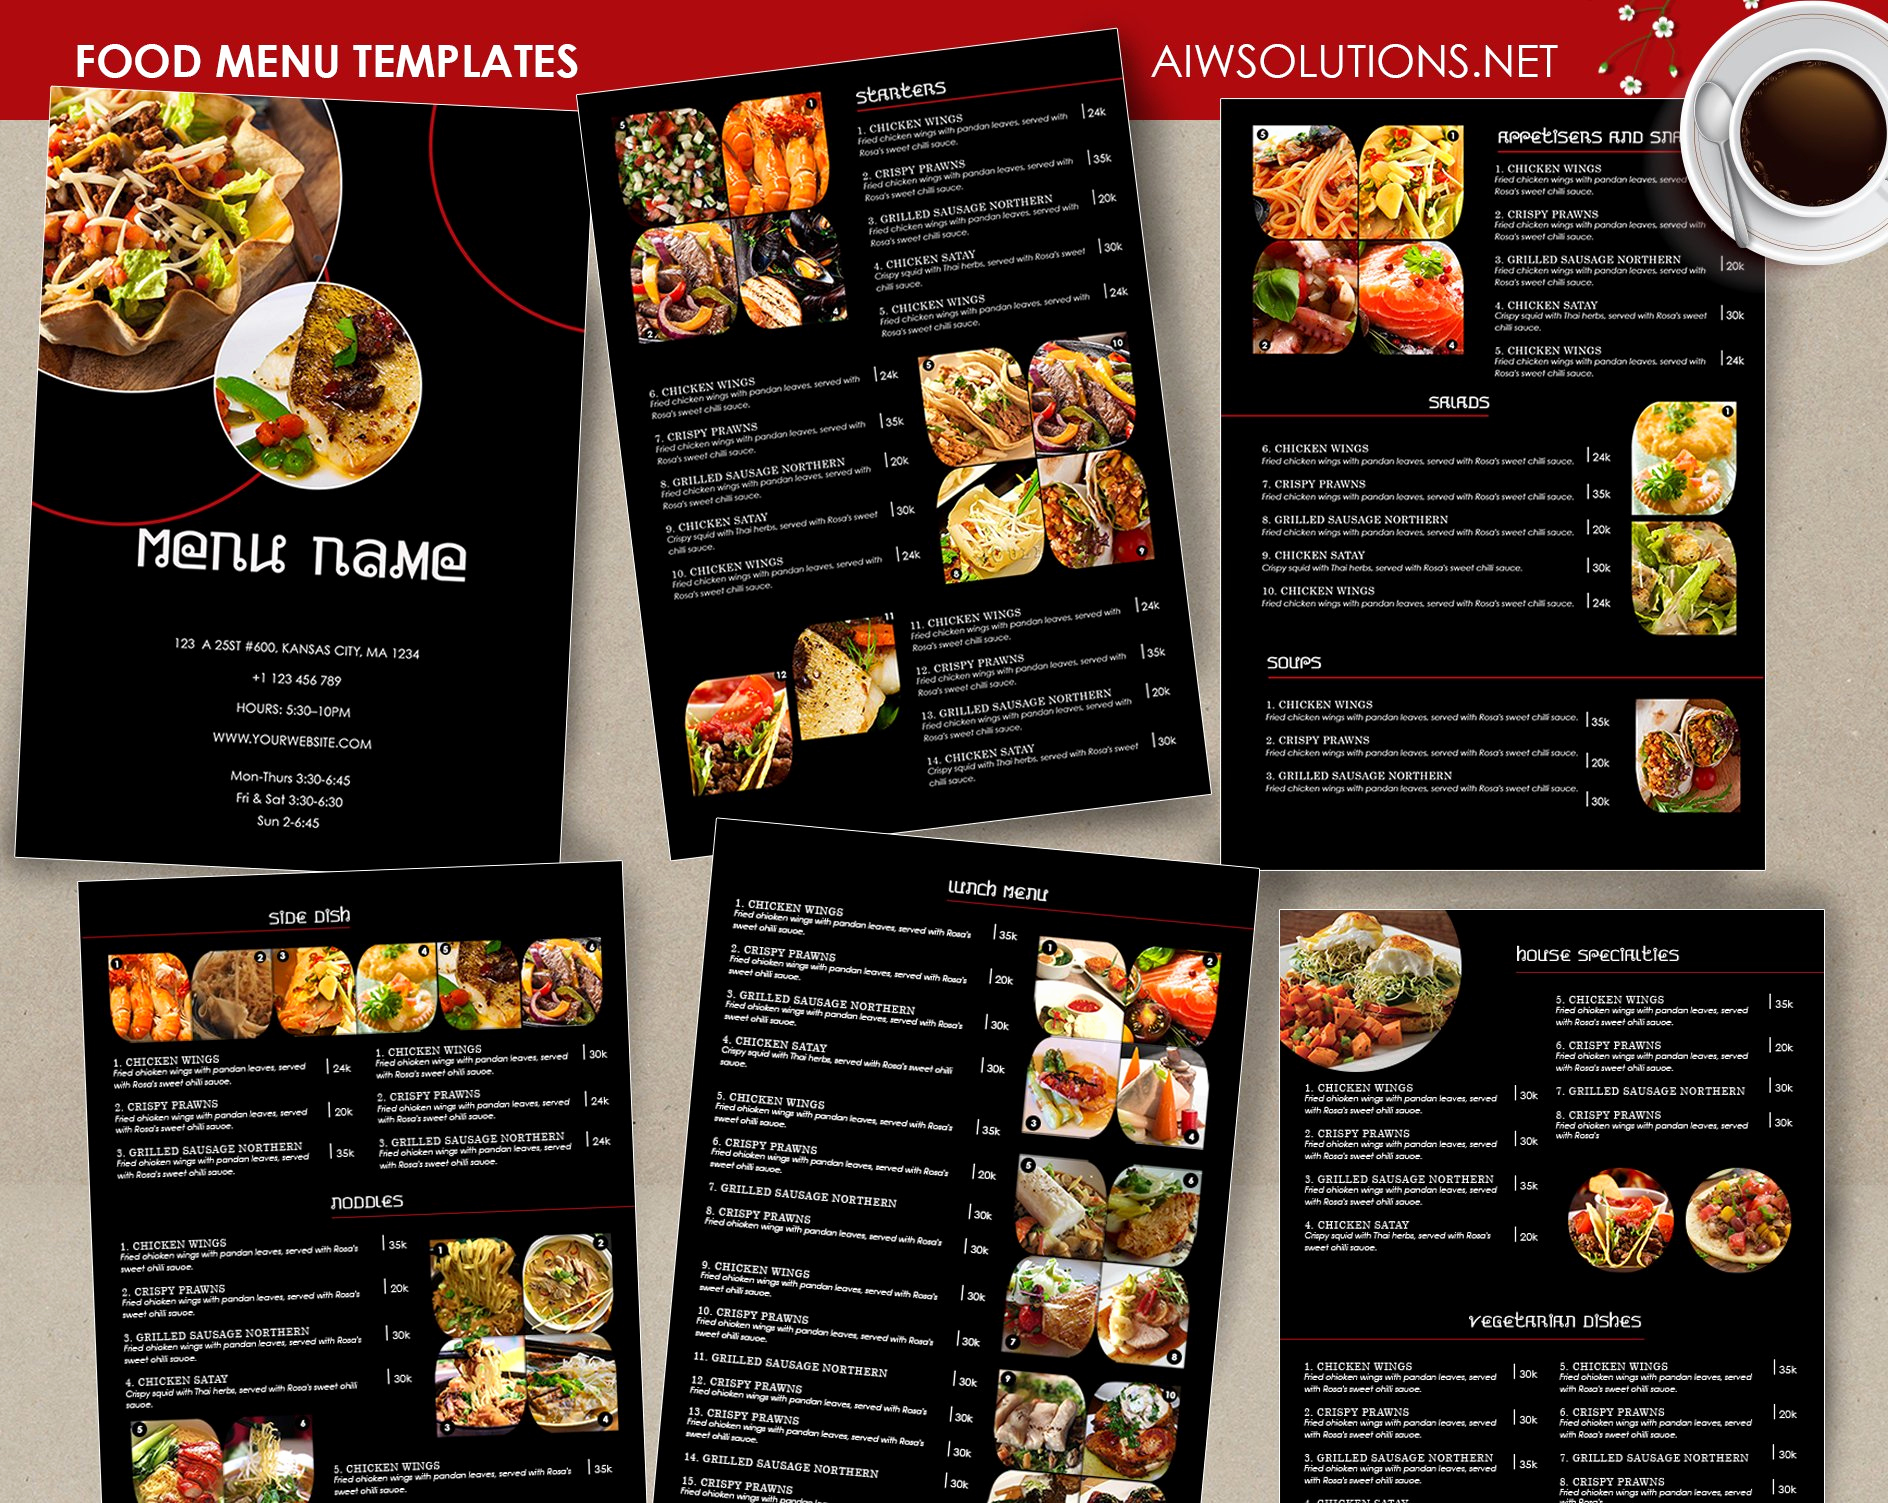 Menu Design Ideas Template Elegant Food Menu Template Id26 Brochure Templates Creative Market